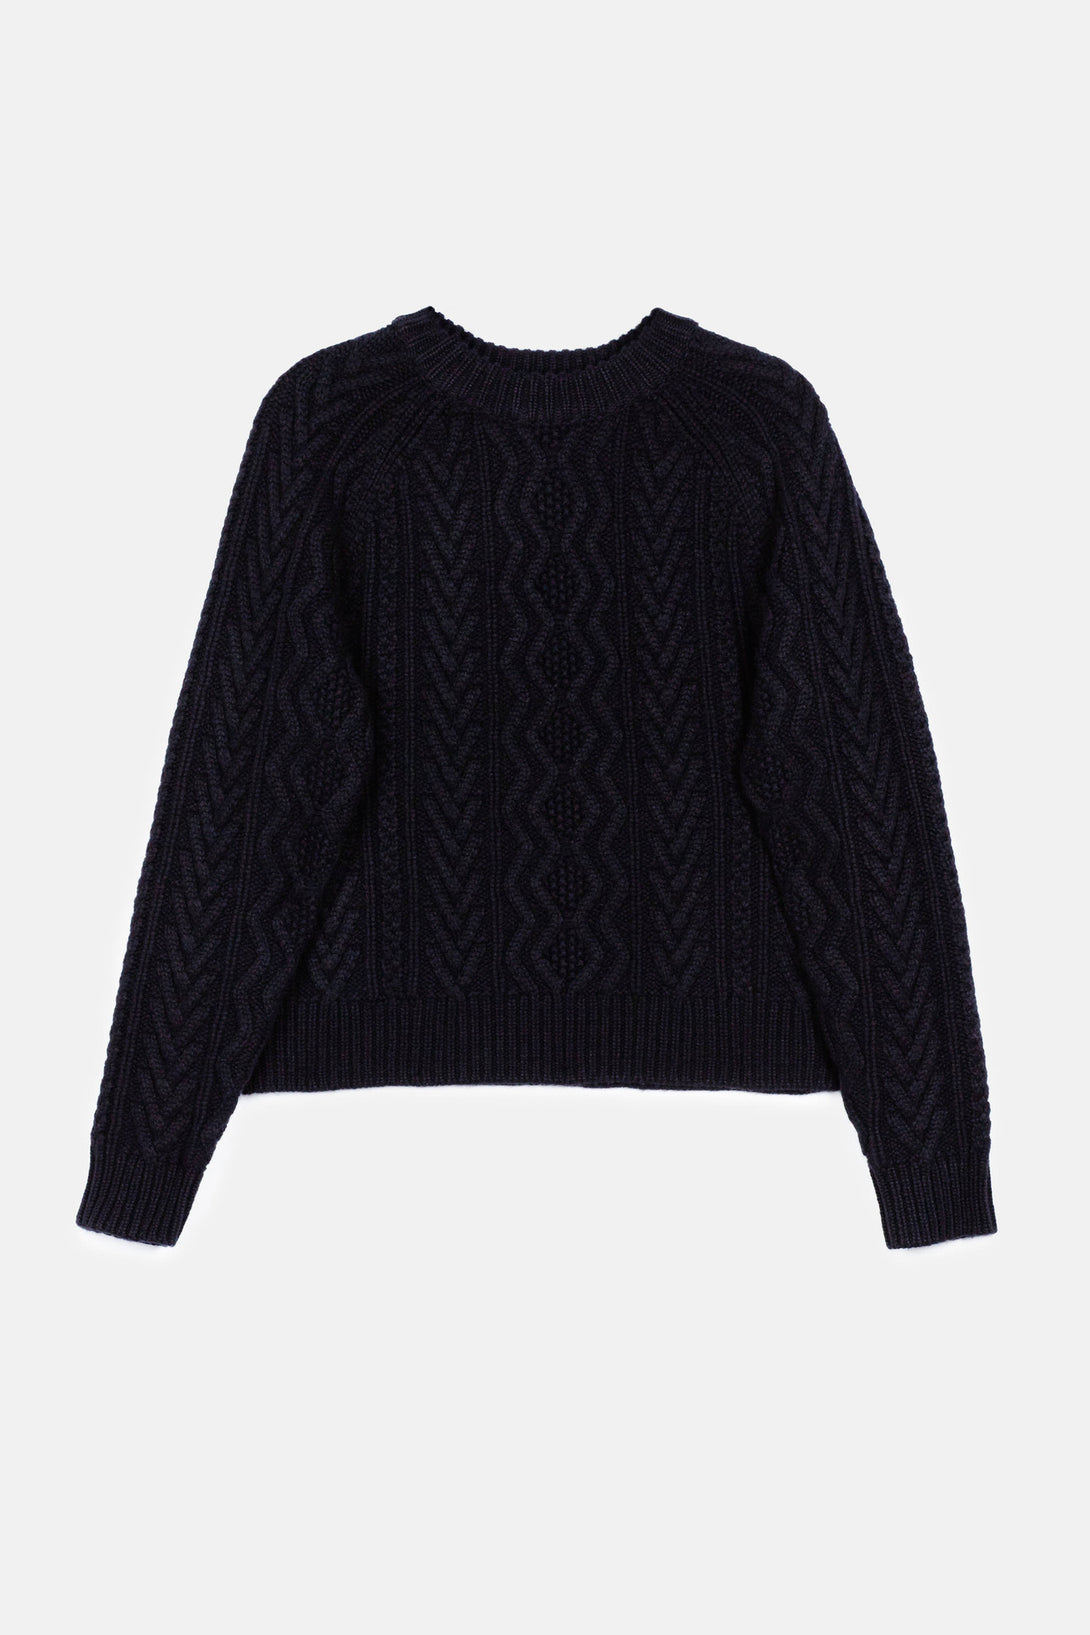 Two-Tone Cashmere Cable LS Crewneck Sweater - Black